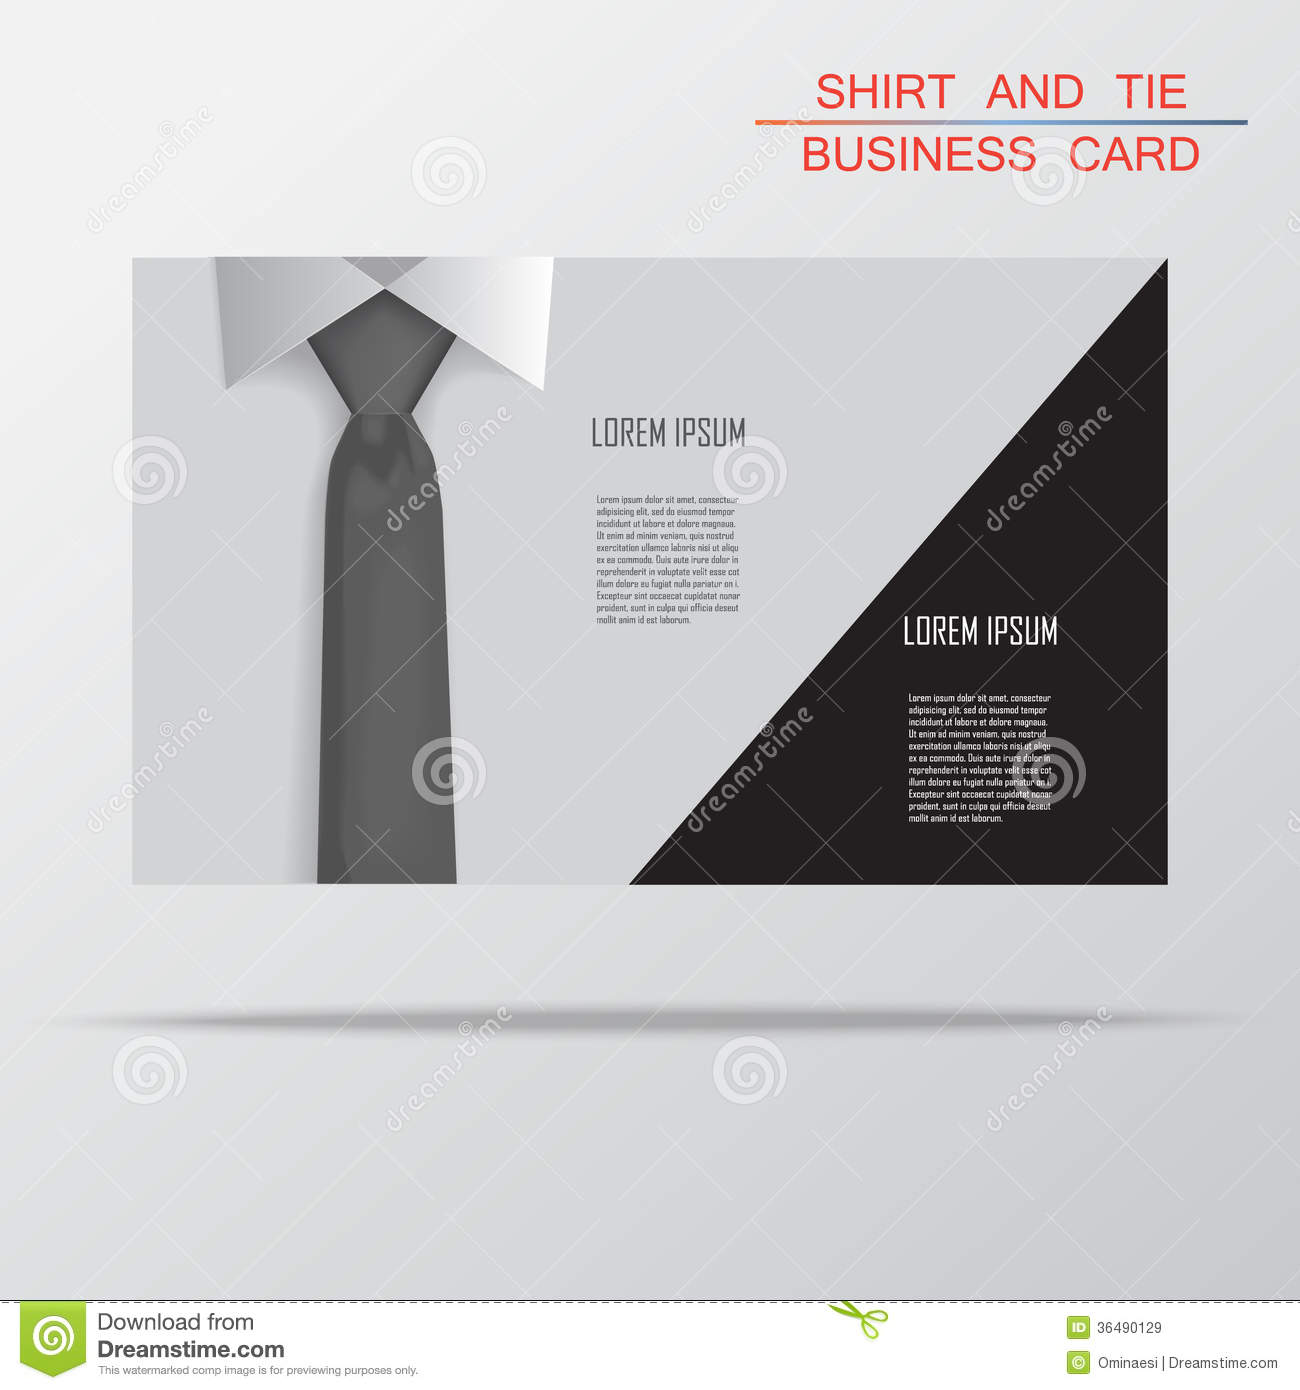 Shirt and tie business card bacground vector stock vector shirt and tie business card bacground vector stock vector illustration of fashion dress 36490129 colourmoves